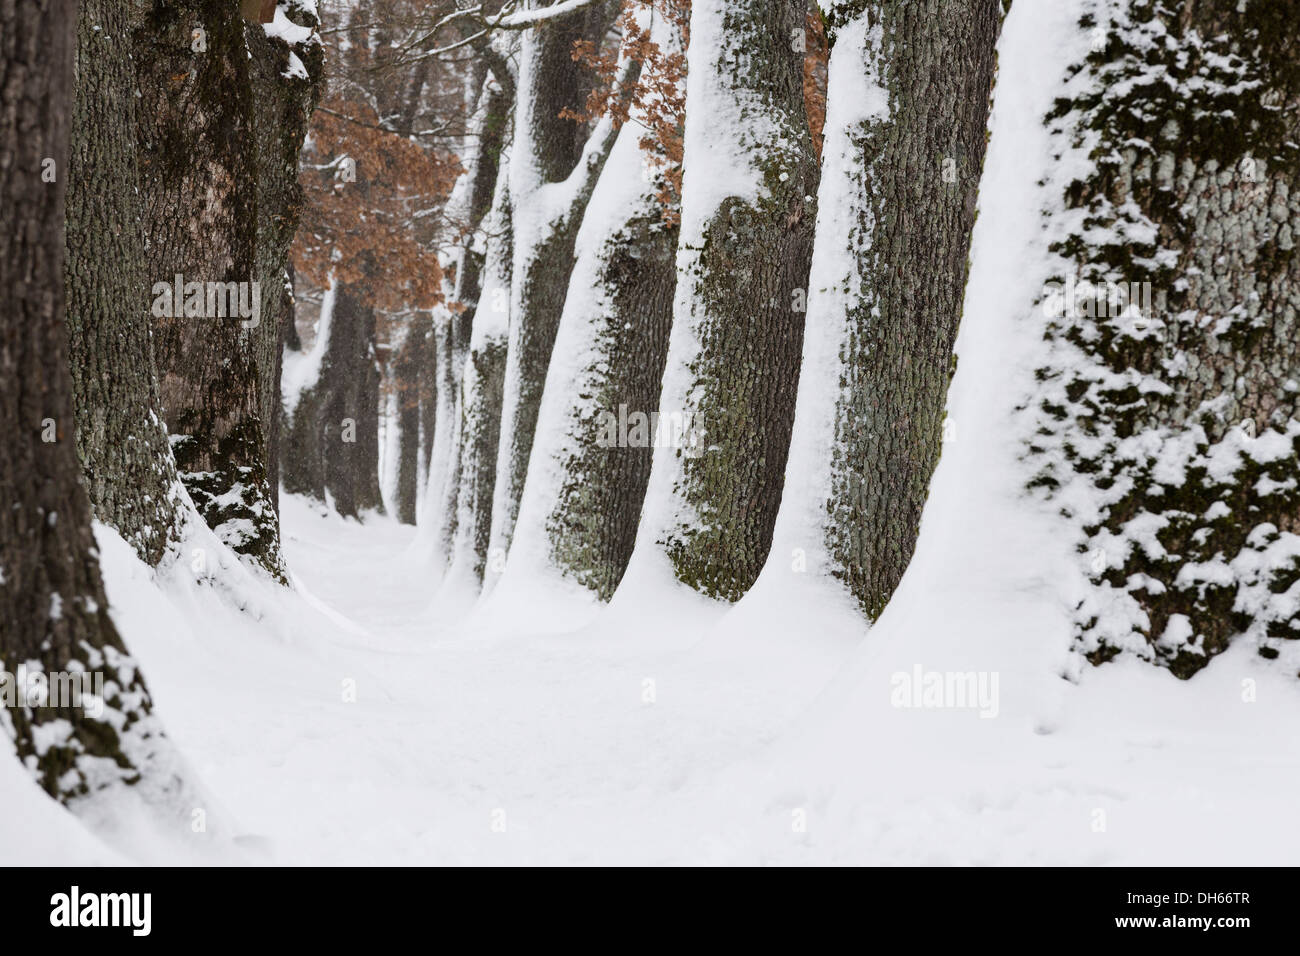 Snow-covered trees, Oberbayern, Uffing, Bavaria, Germany - Stock Image